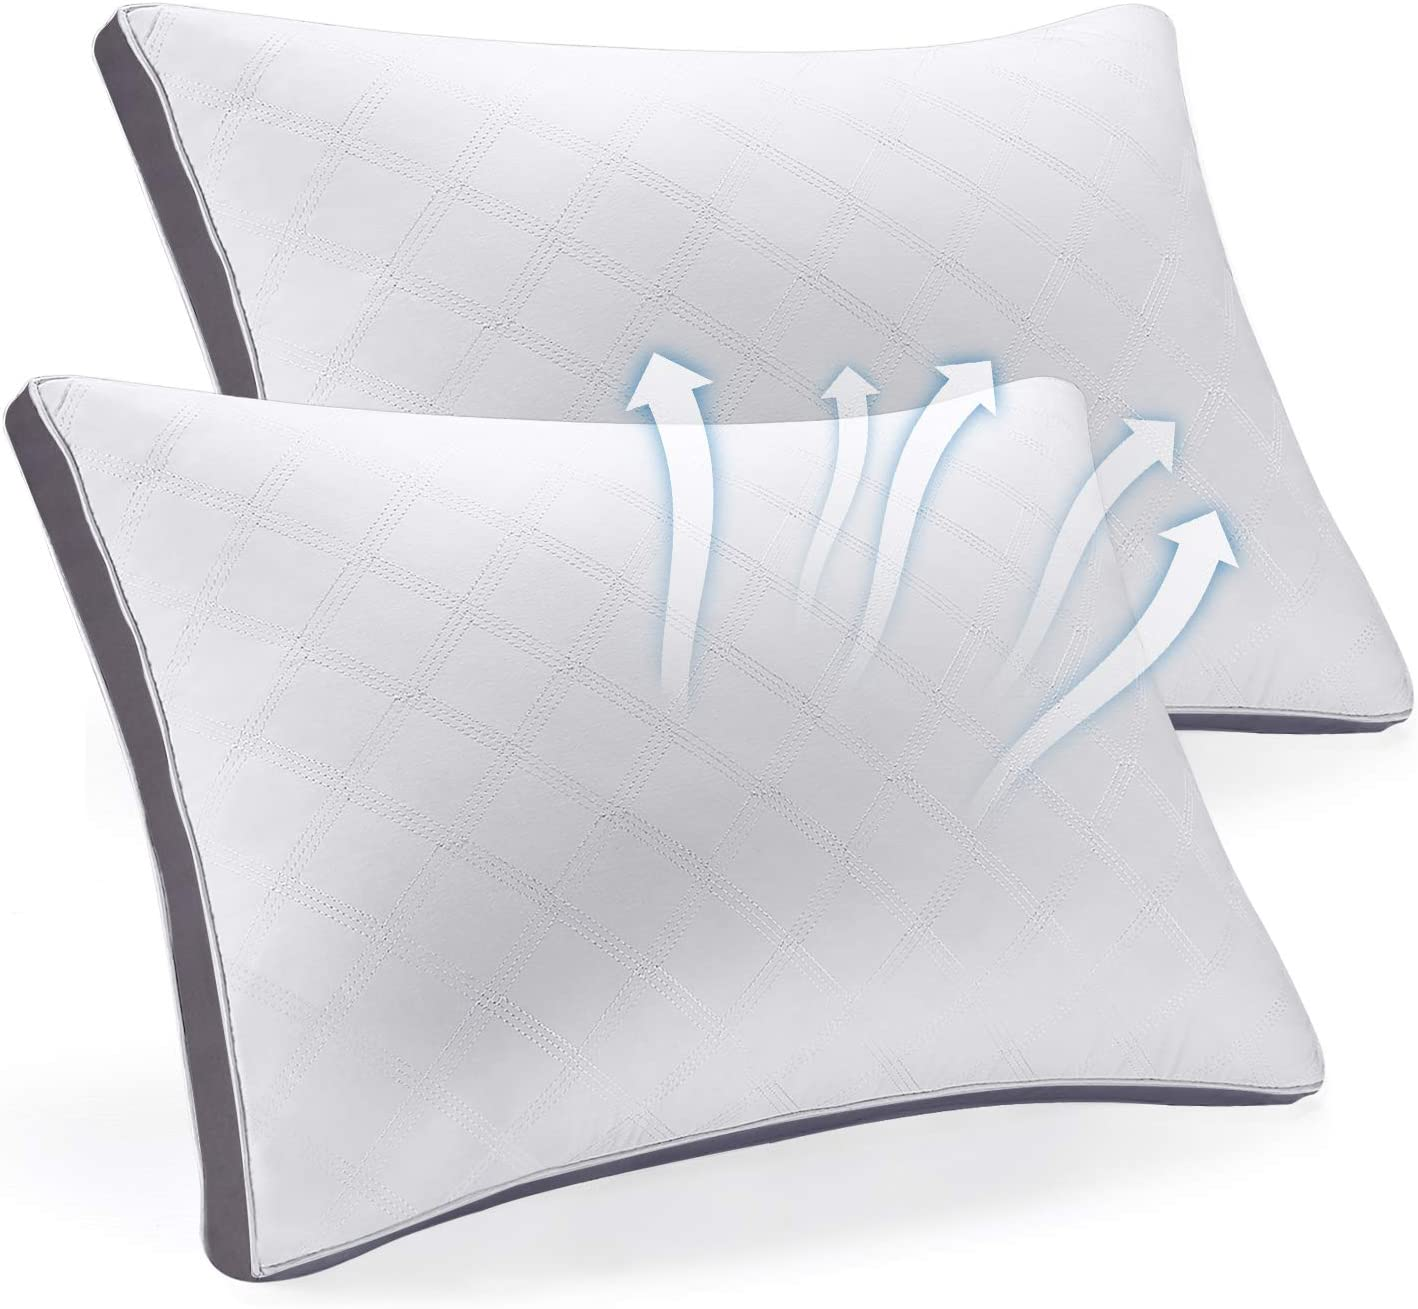 SEPOVEDA Bed Pillows